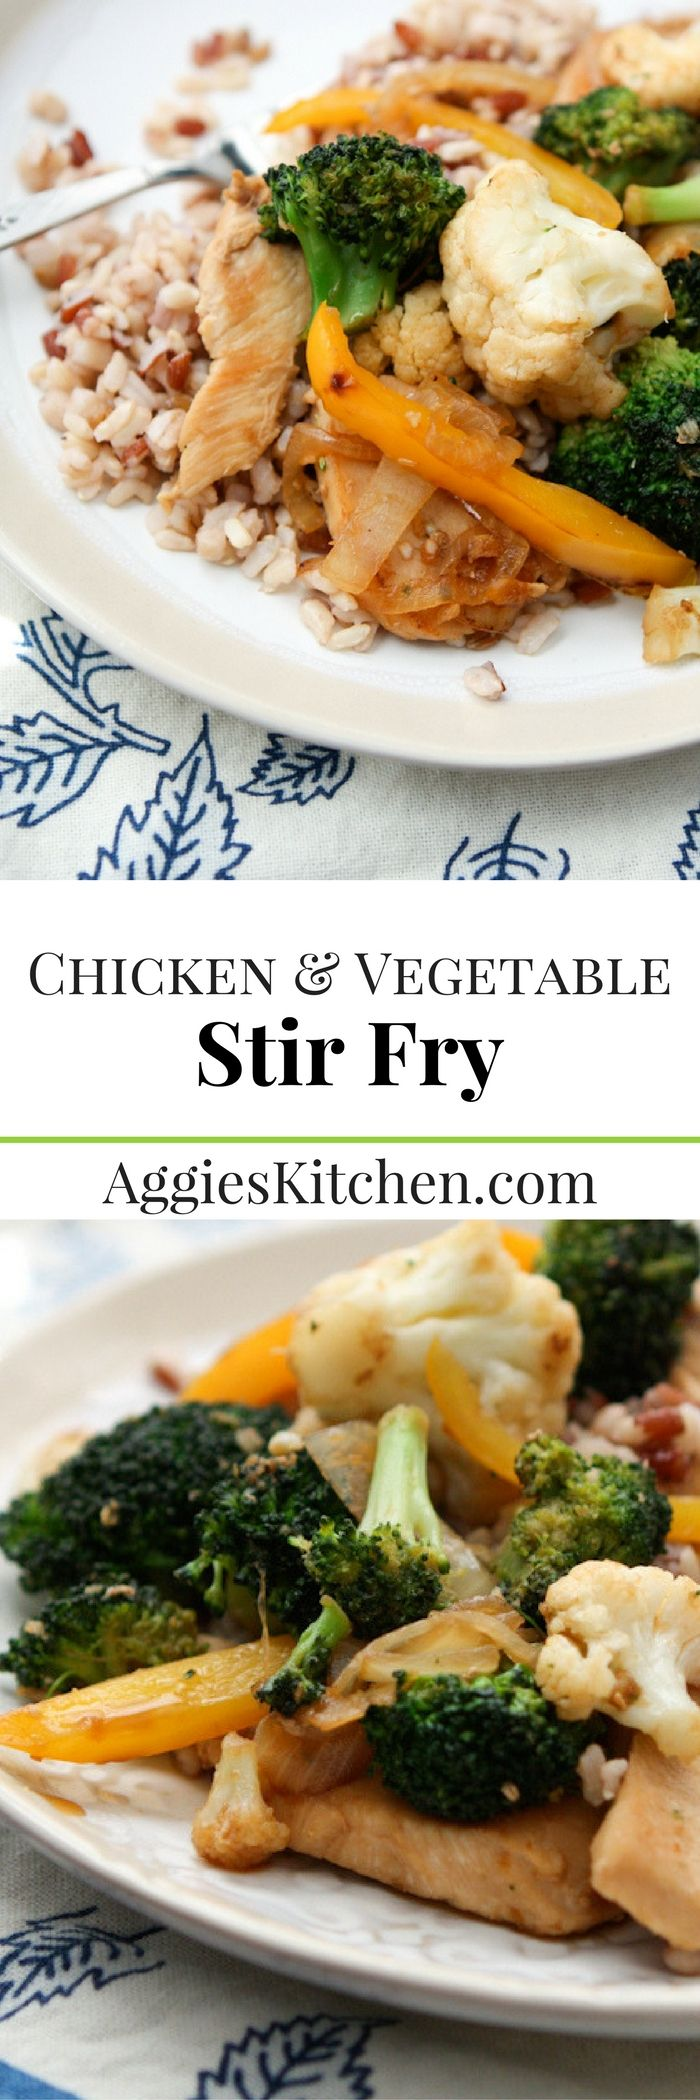 This chicken and vegetable stir fry is a simple healthy option for busy weeknights. Your whole family will love it!